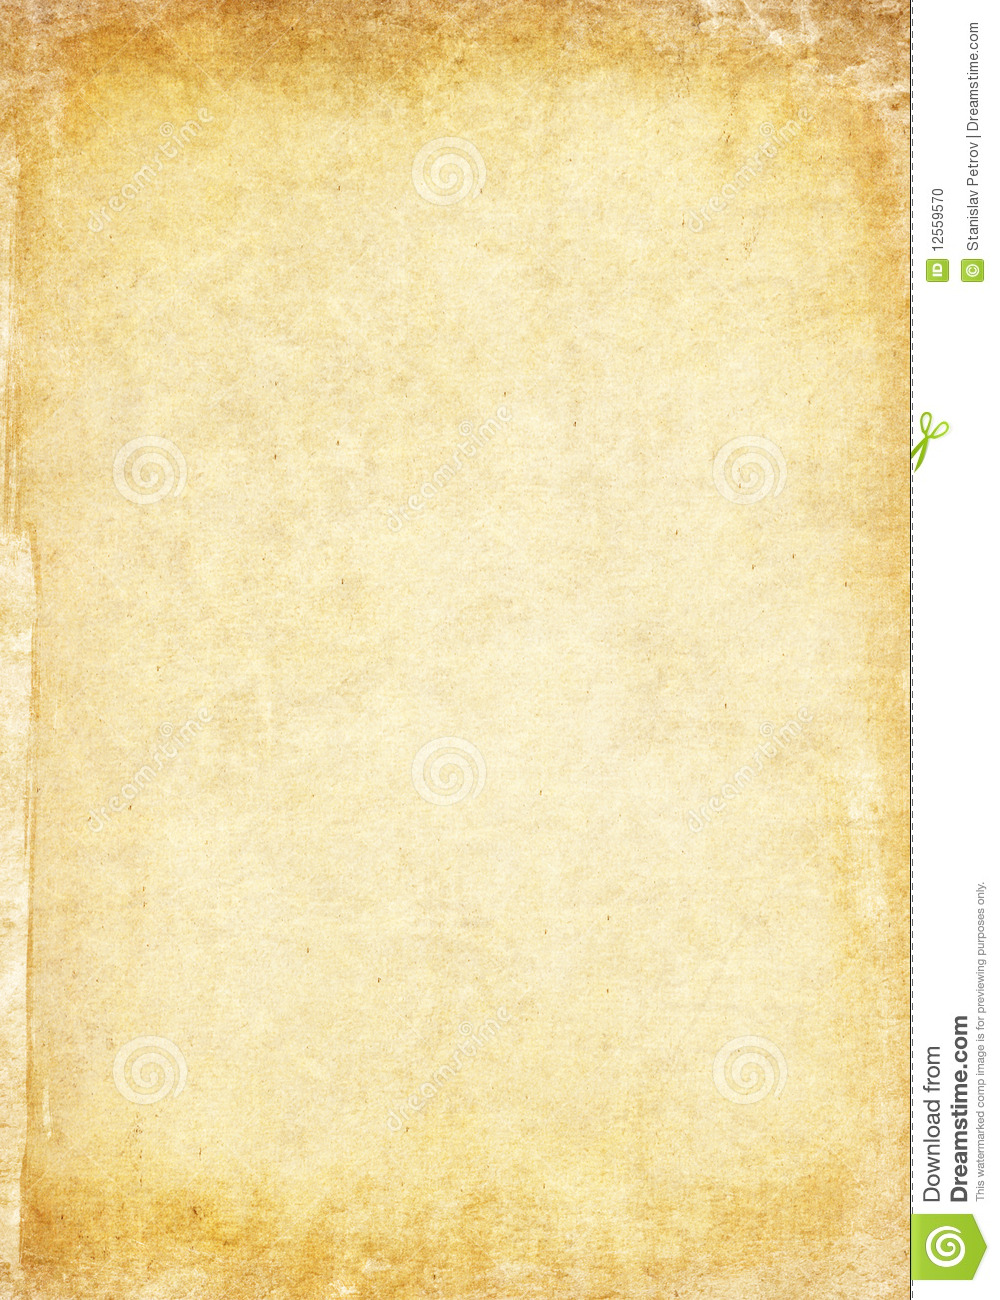 Aged Paper Texture Stock Photo Image 12559570